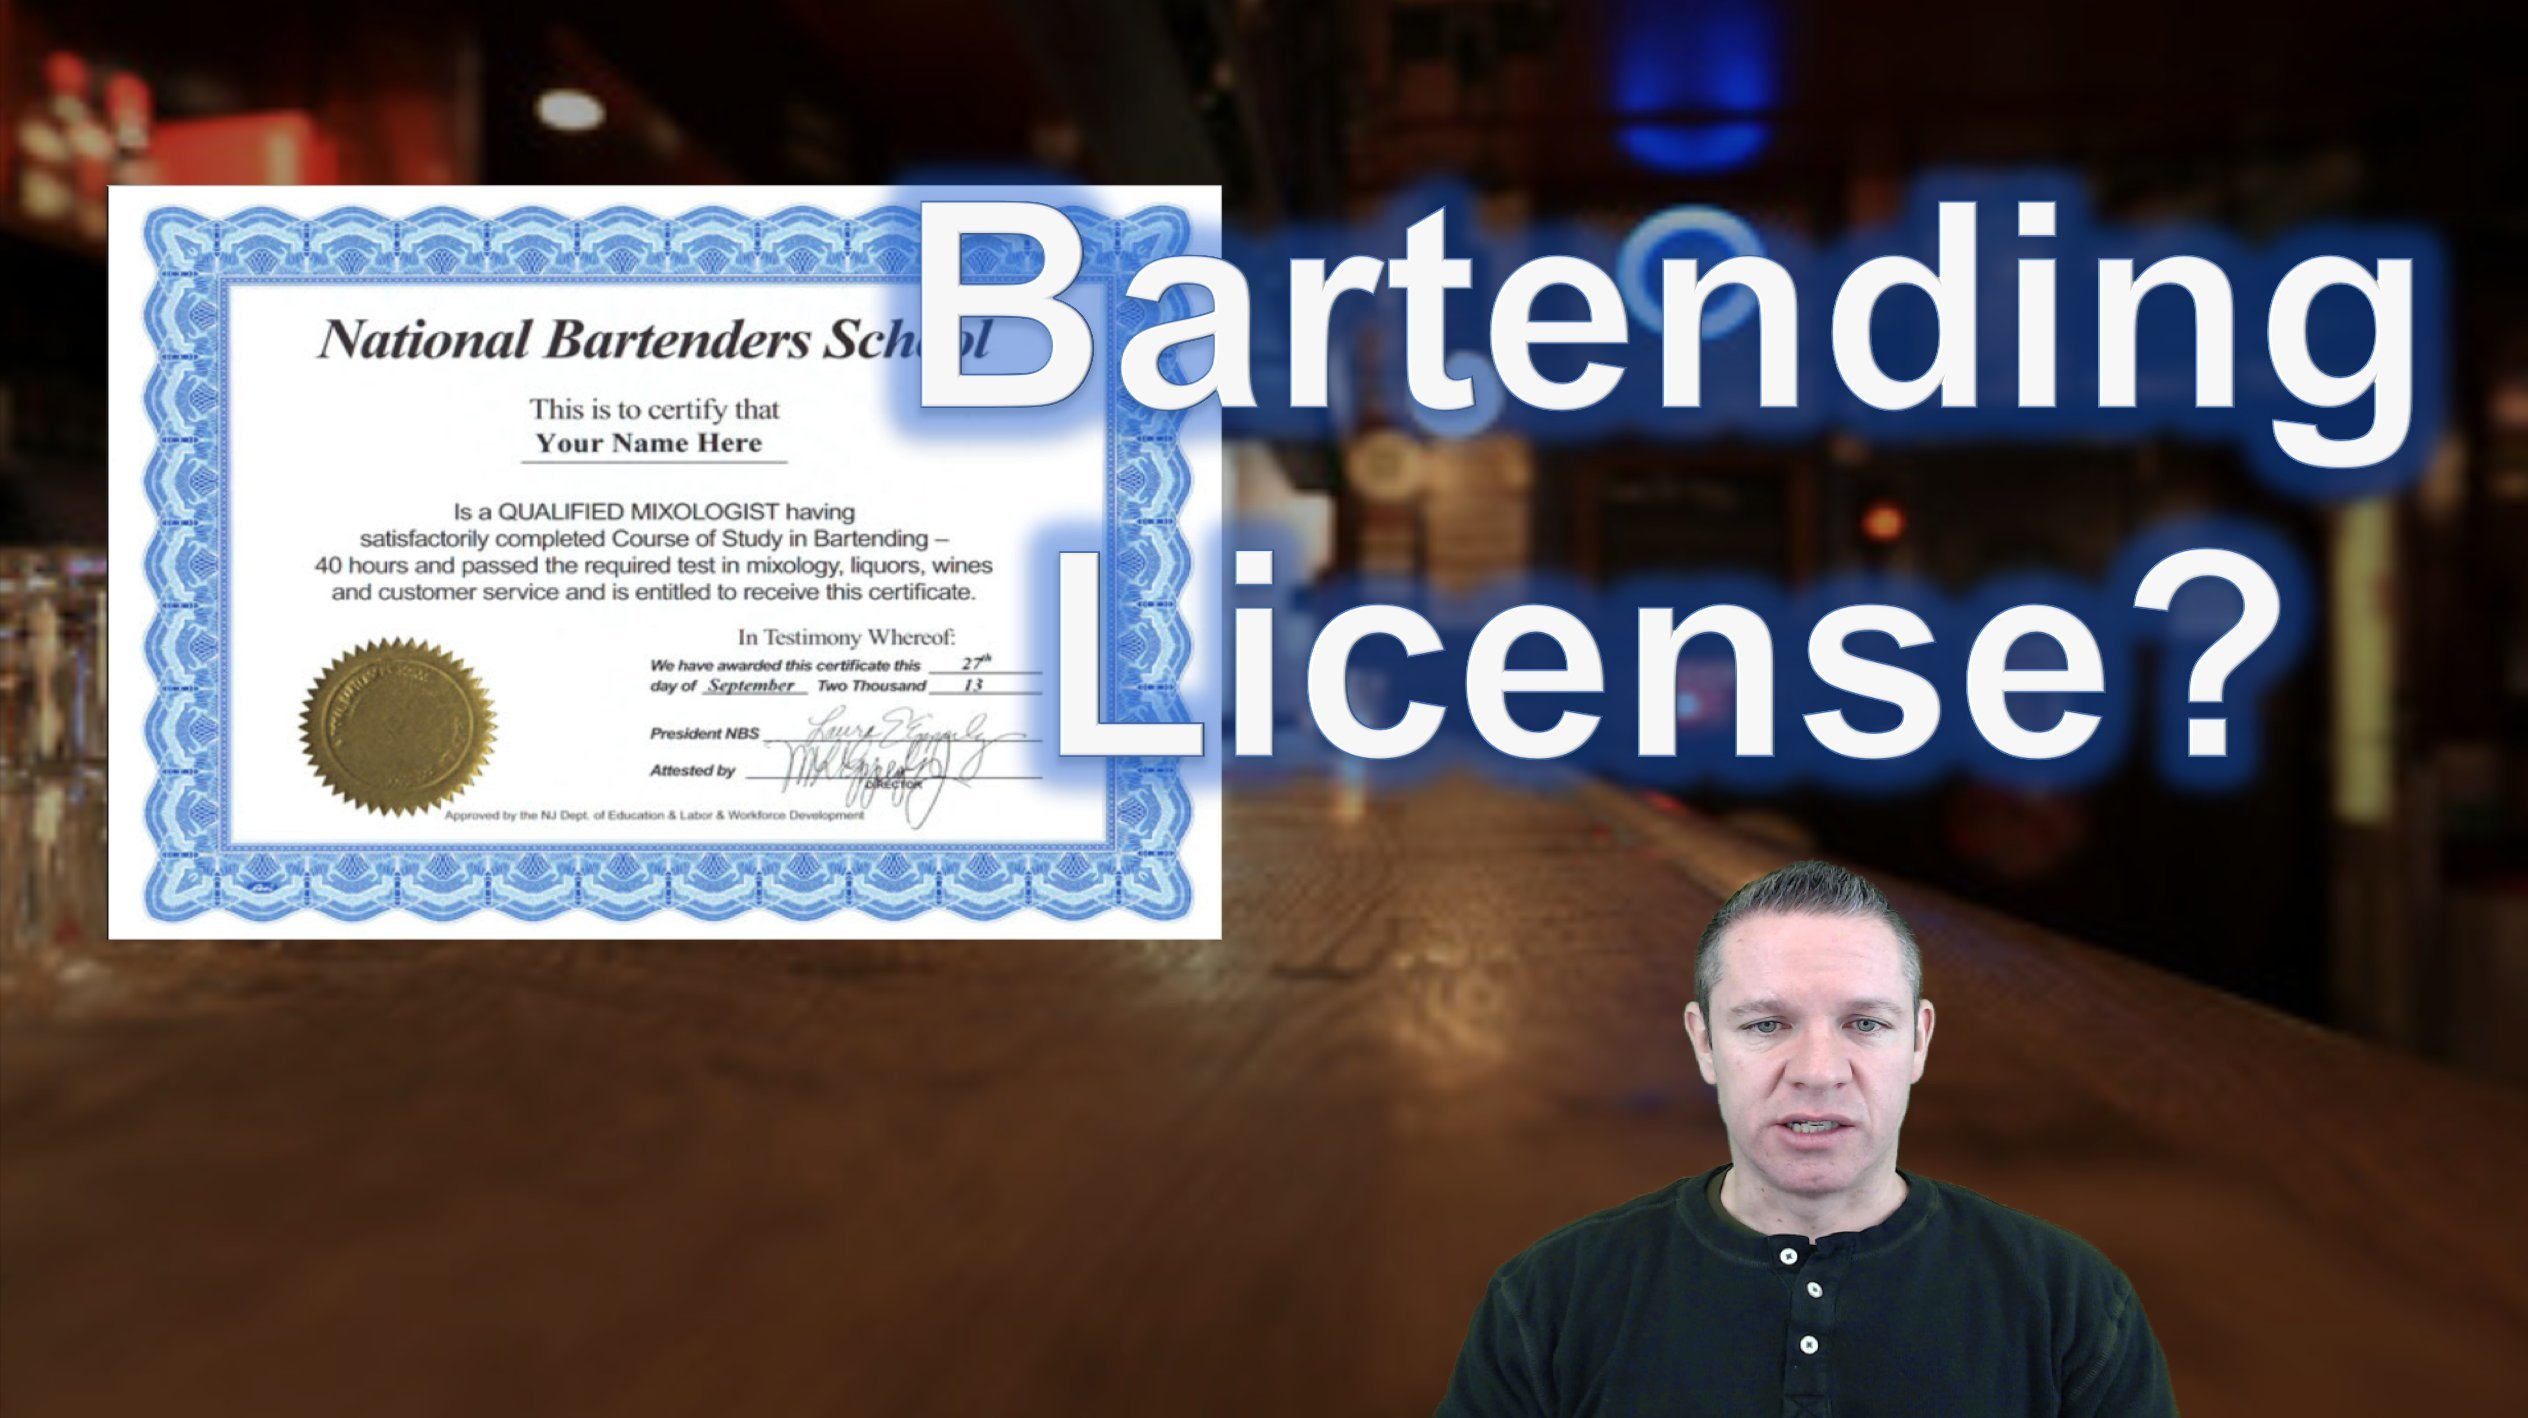 Do You Need A Bartending License Or Certificate To Bartend Dave